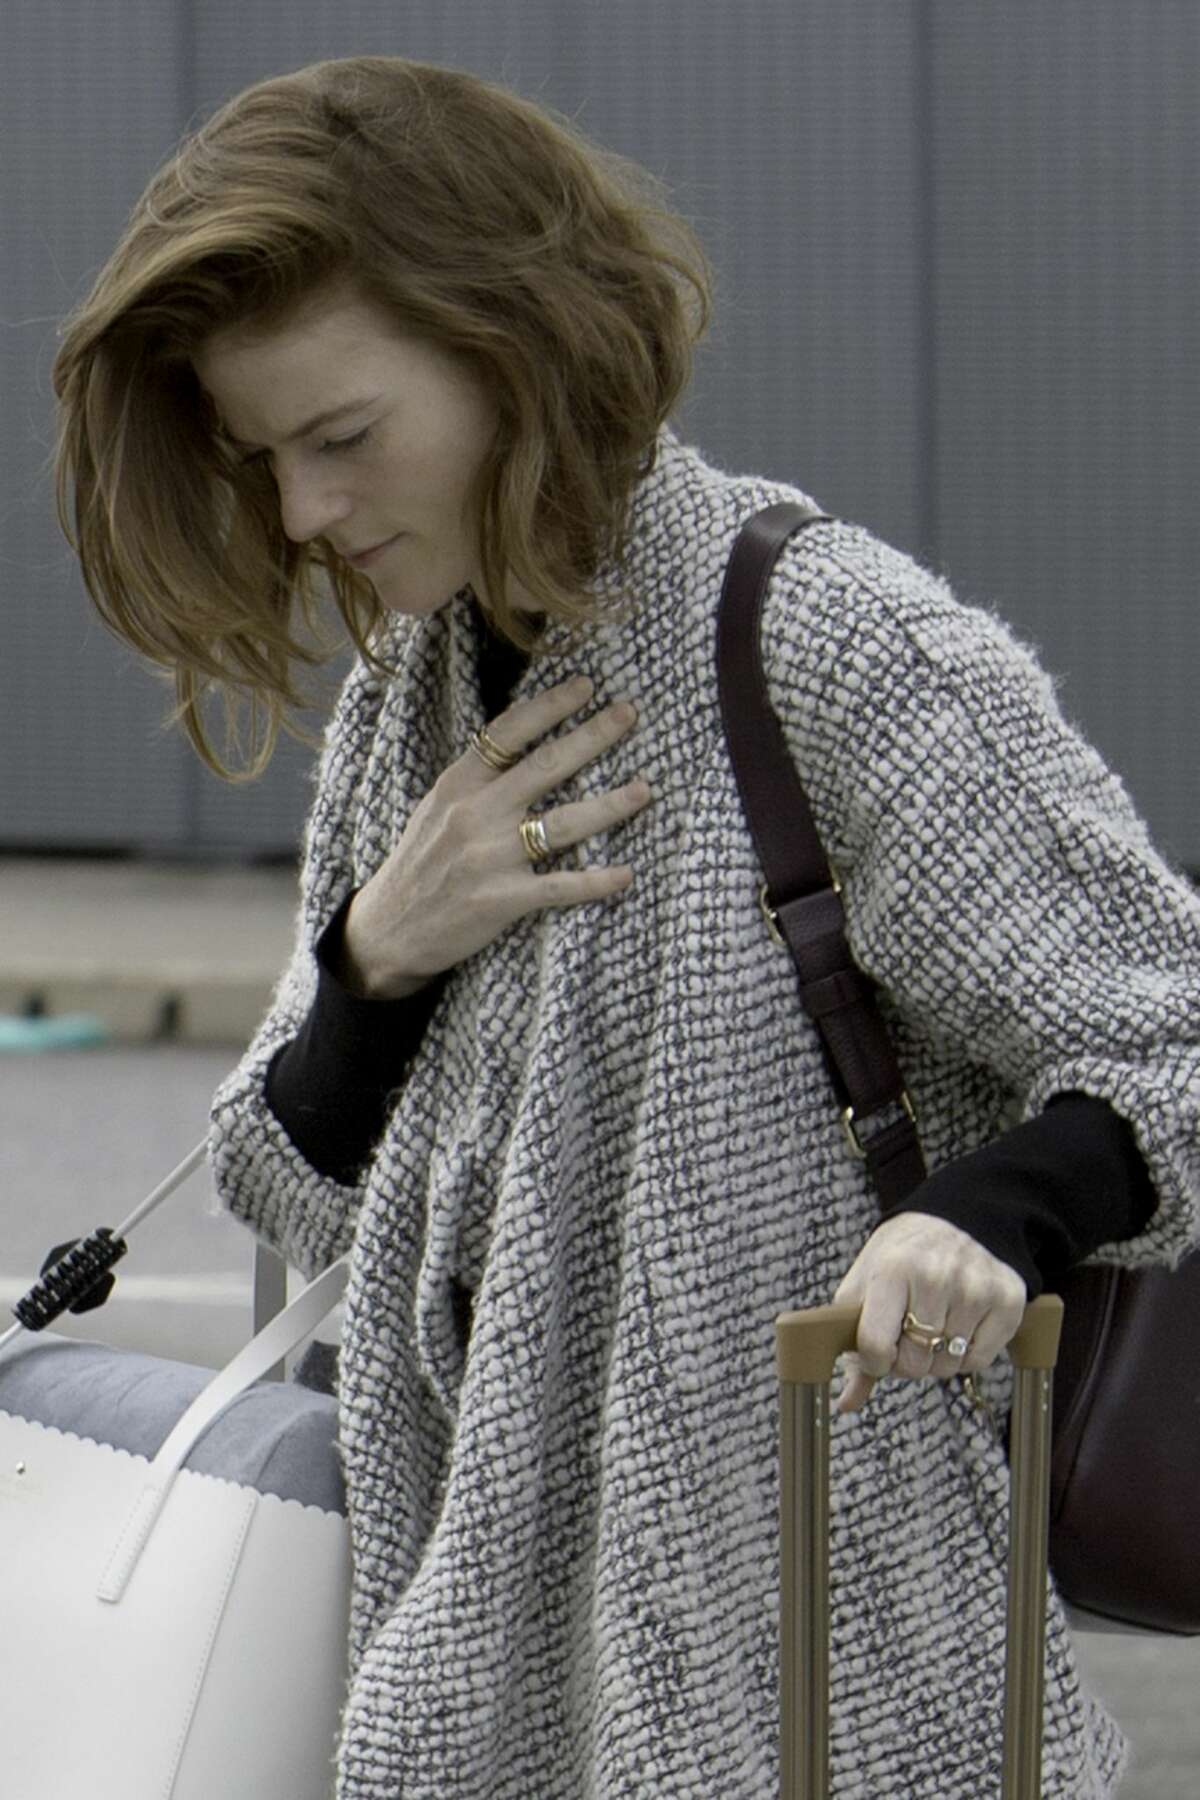 Actress Rose Leslie shows off her engagement ring as she arrives at Heathrow airport to catch a flight on October 8, 2017 in London, England.